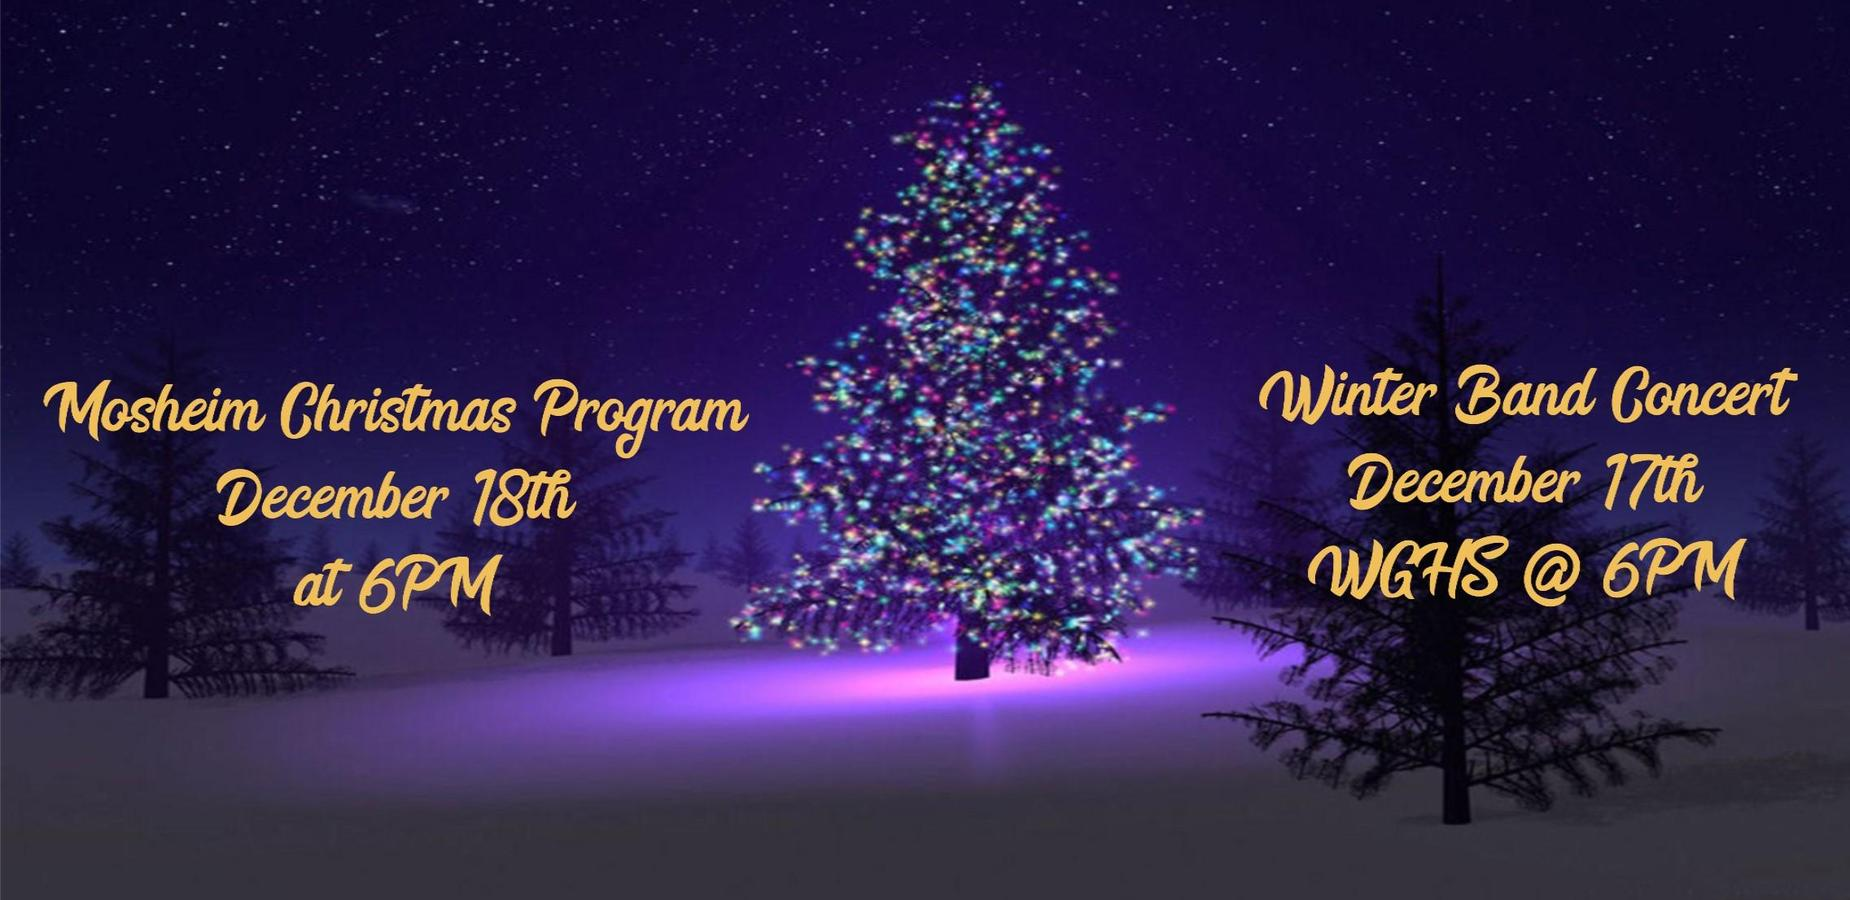 Mosheim Christmas Program